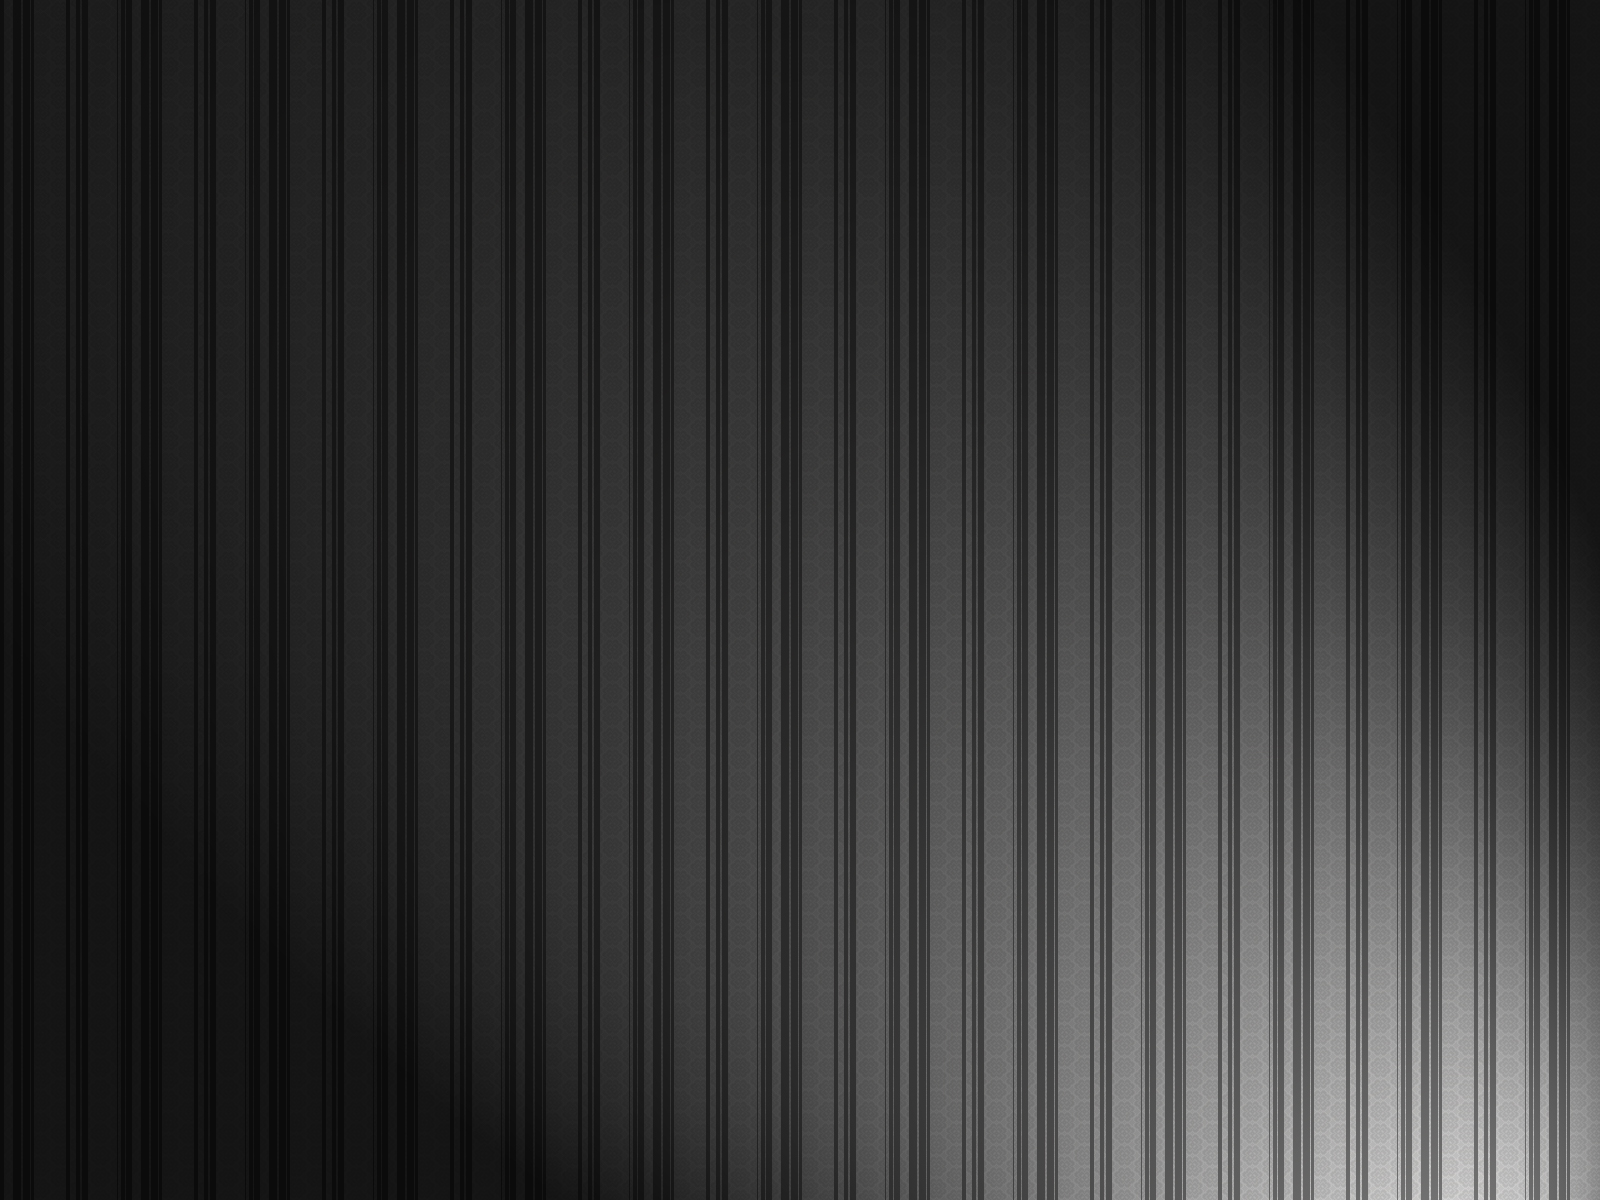 dimly stylish obi desktop wallpaper in gray and black